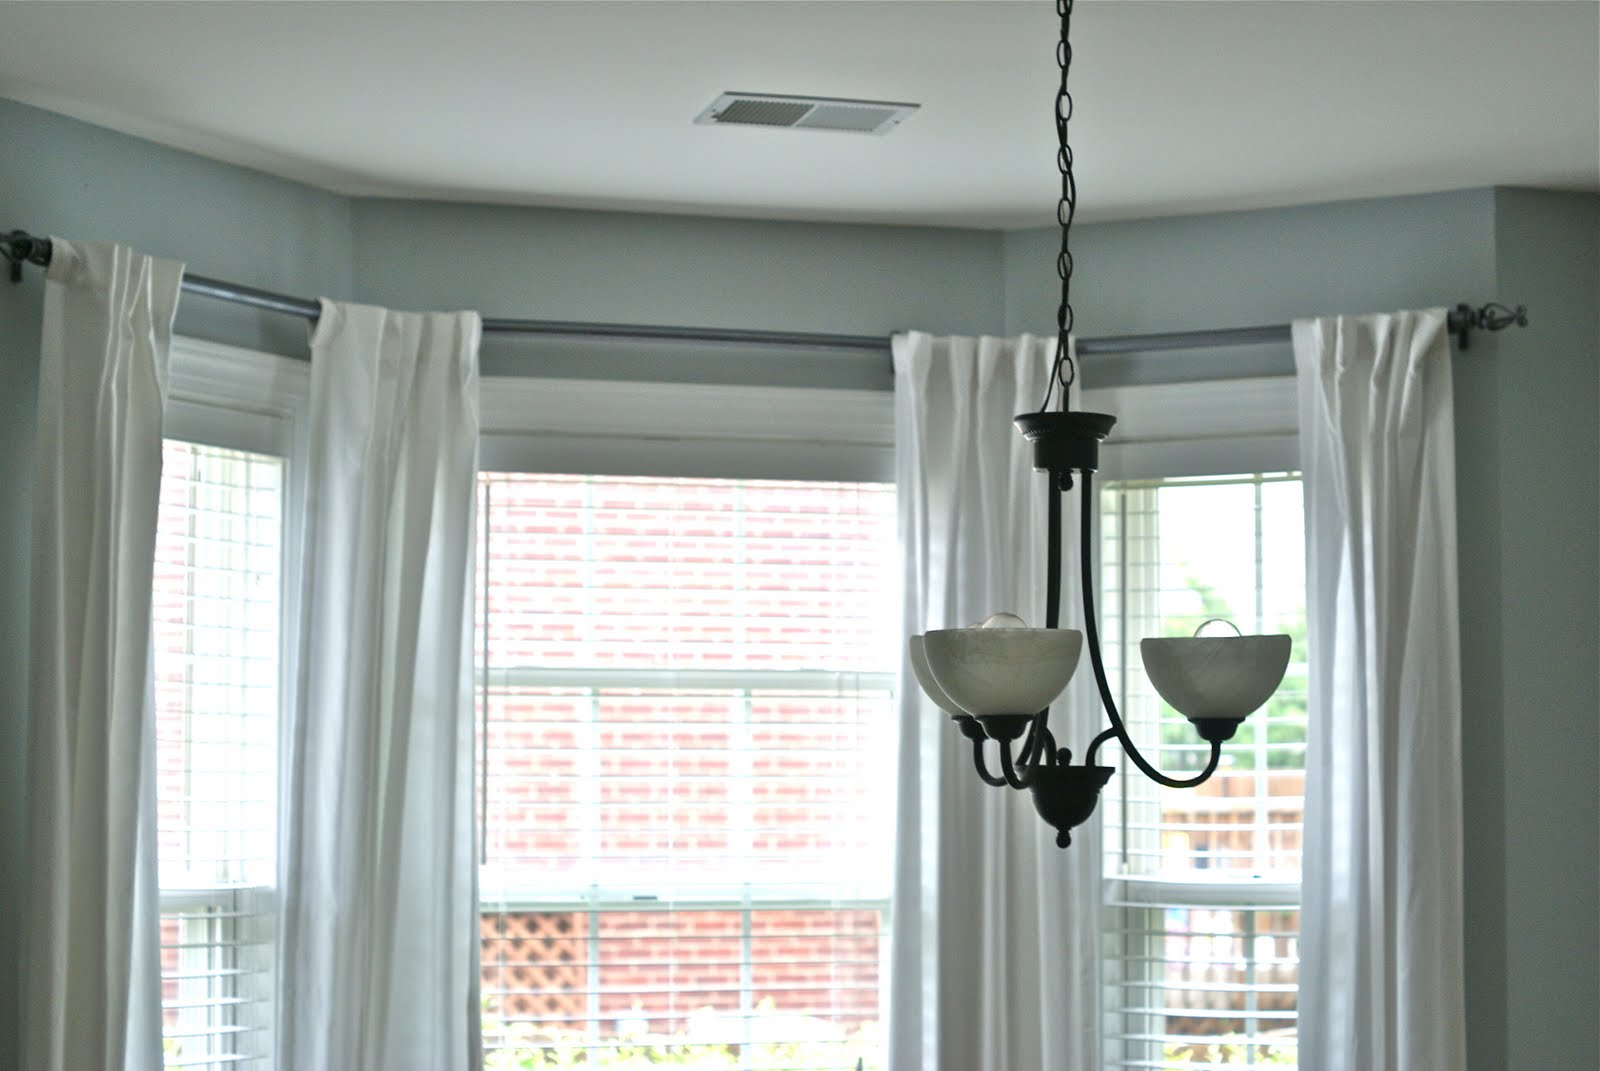 Amusing Curtain Rods For Bay Windows With White Ds Beautiful Home Decorating Ideas